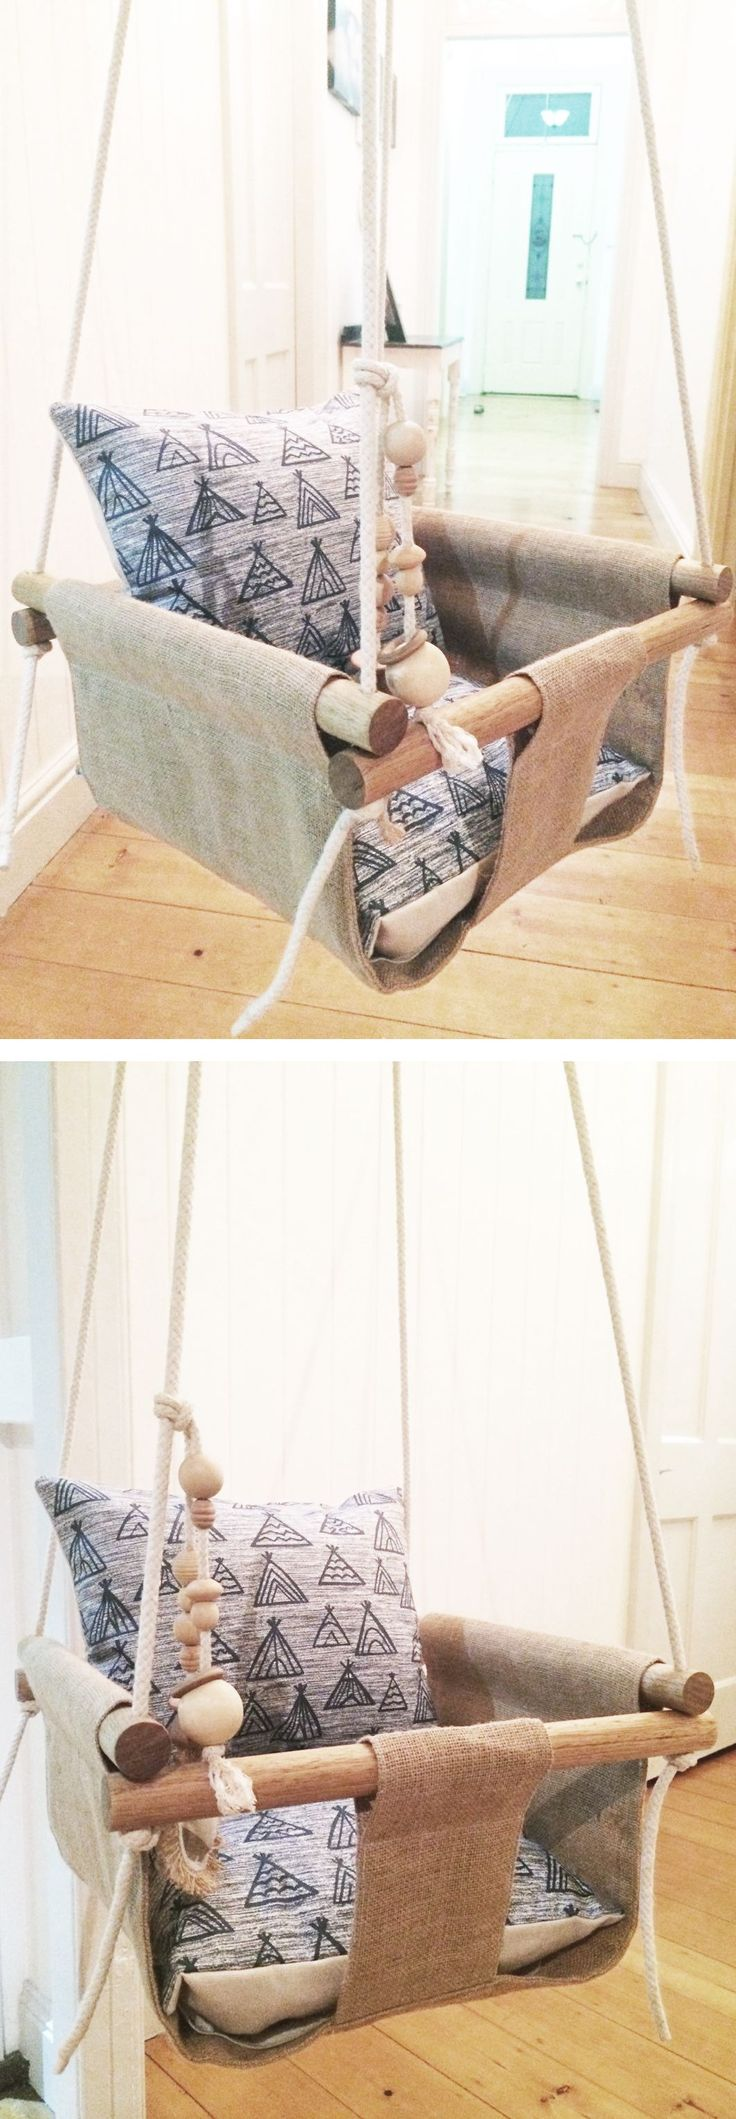 Handmade Burlap Baby Swing, Toddler Swing or Kids Swing and Rattle - perfect Christmas holiday gift for a toddler or baby parent, mom, or dad. Etsy - handmade in Australia.